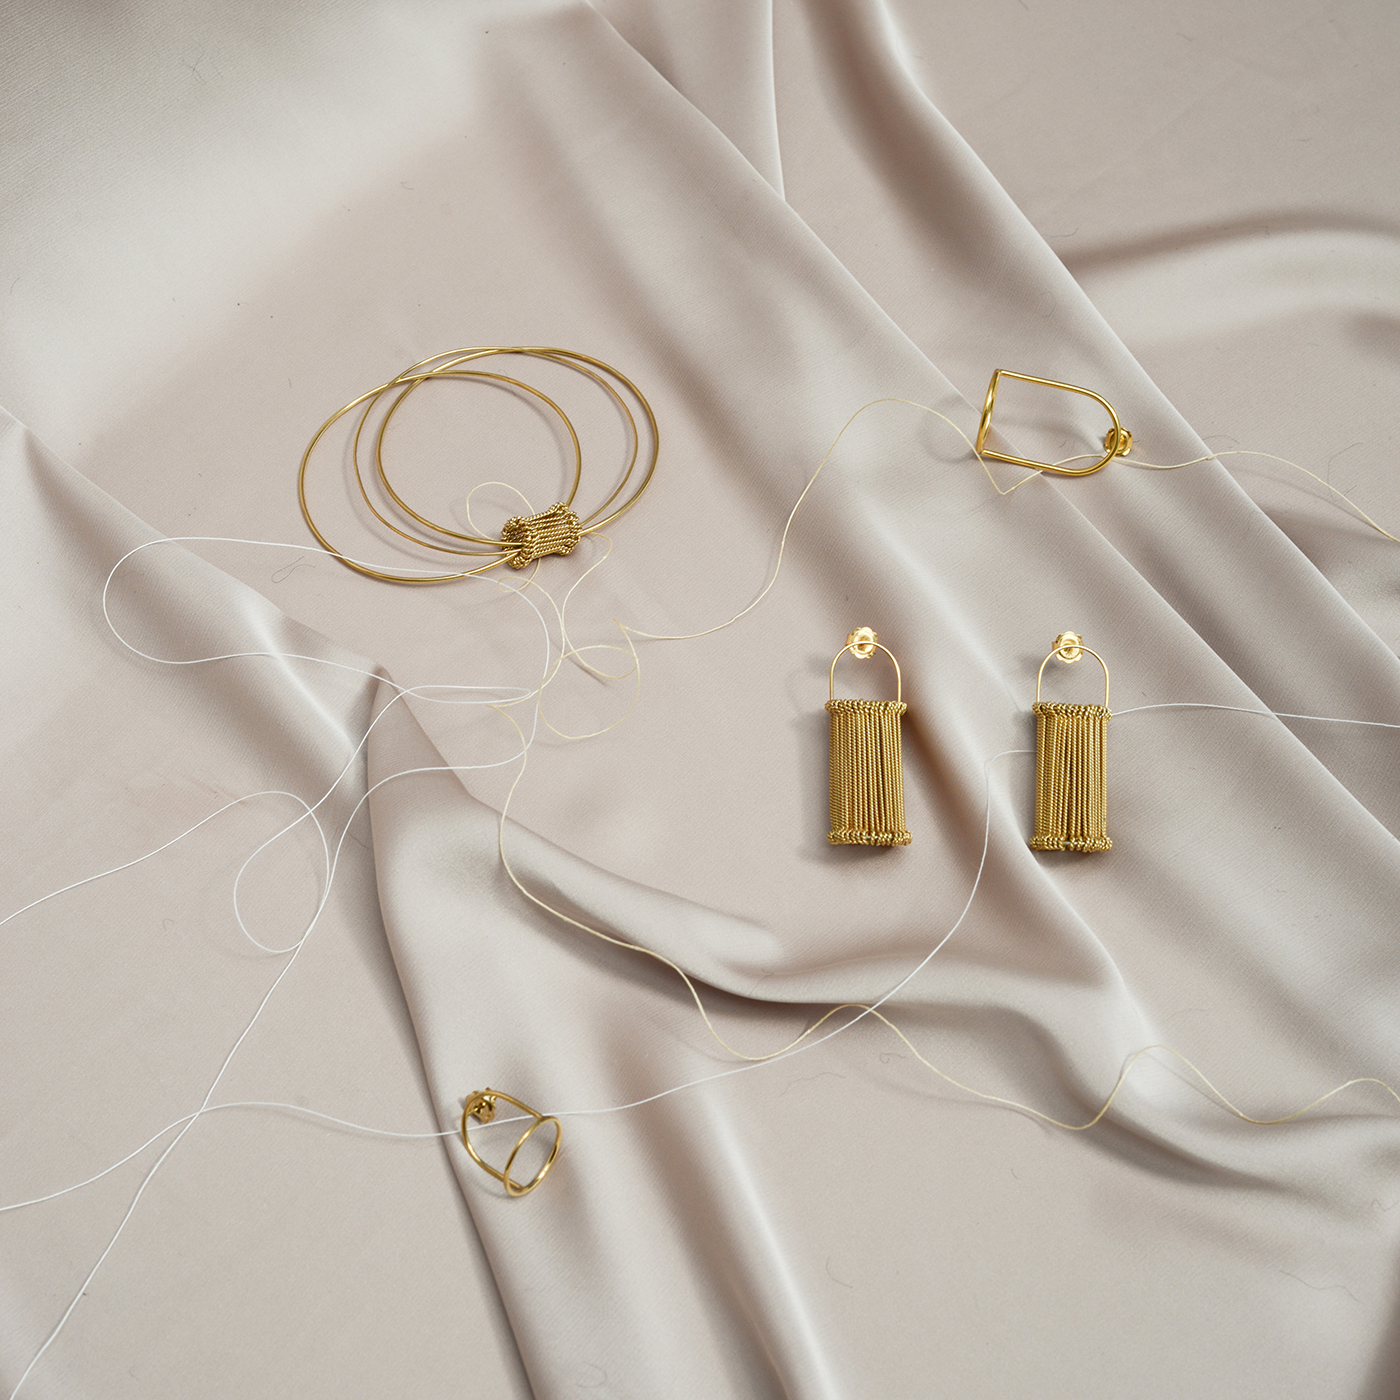 Lady at a private view bangle, Bell Jar earrings & Heddle earrings